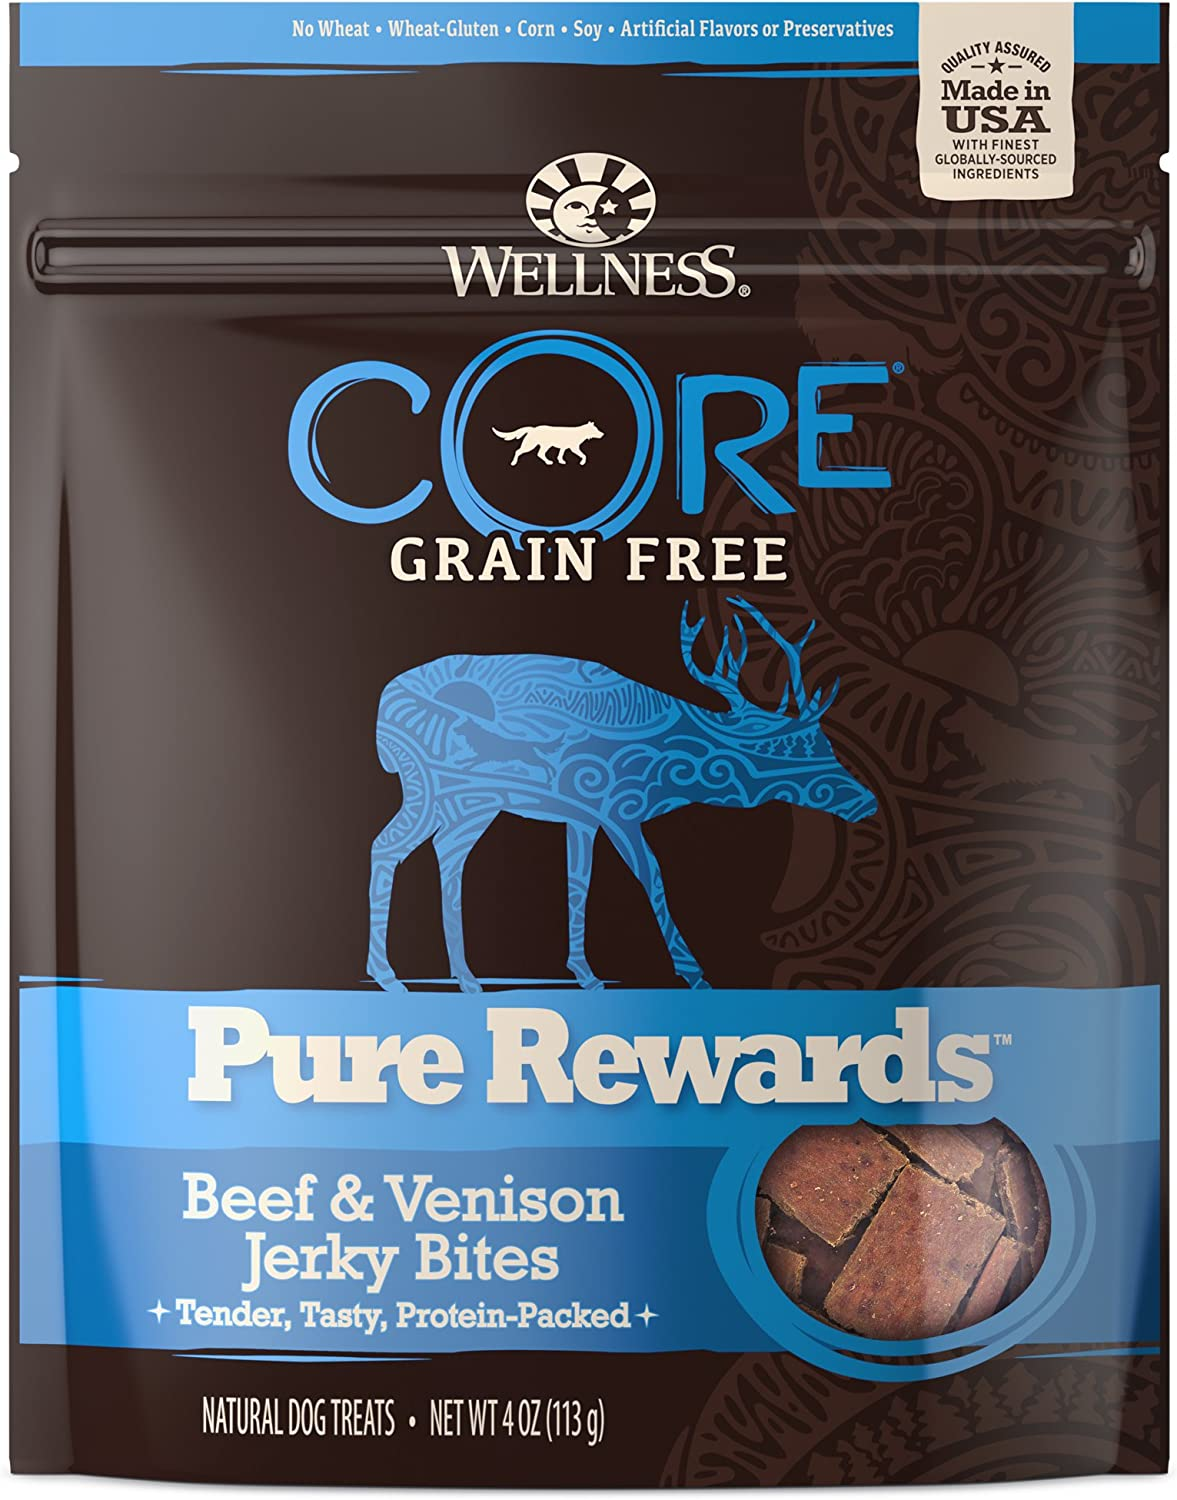 Wellness Core Pure Rewards Natural Grain Free Dog Treats, Soft Beef & Venison Jerky Bites, 4-Ounce Bag